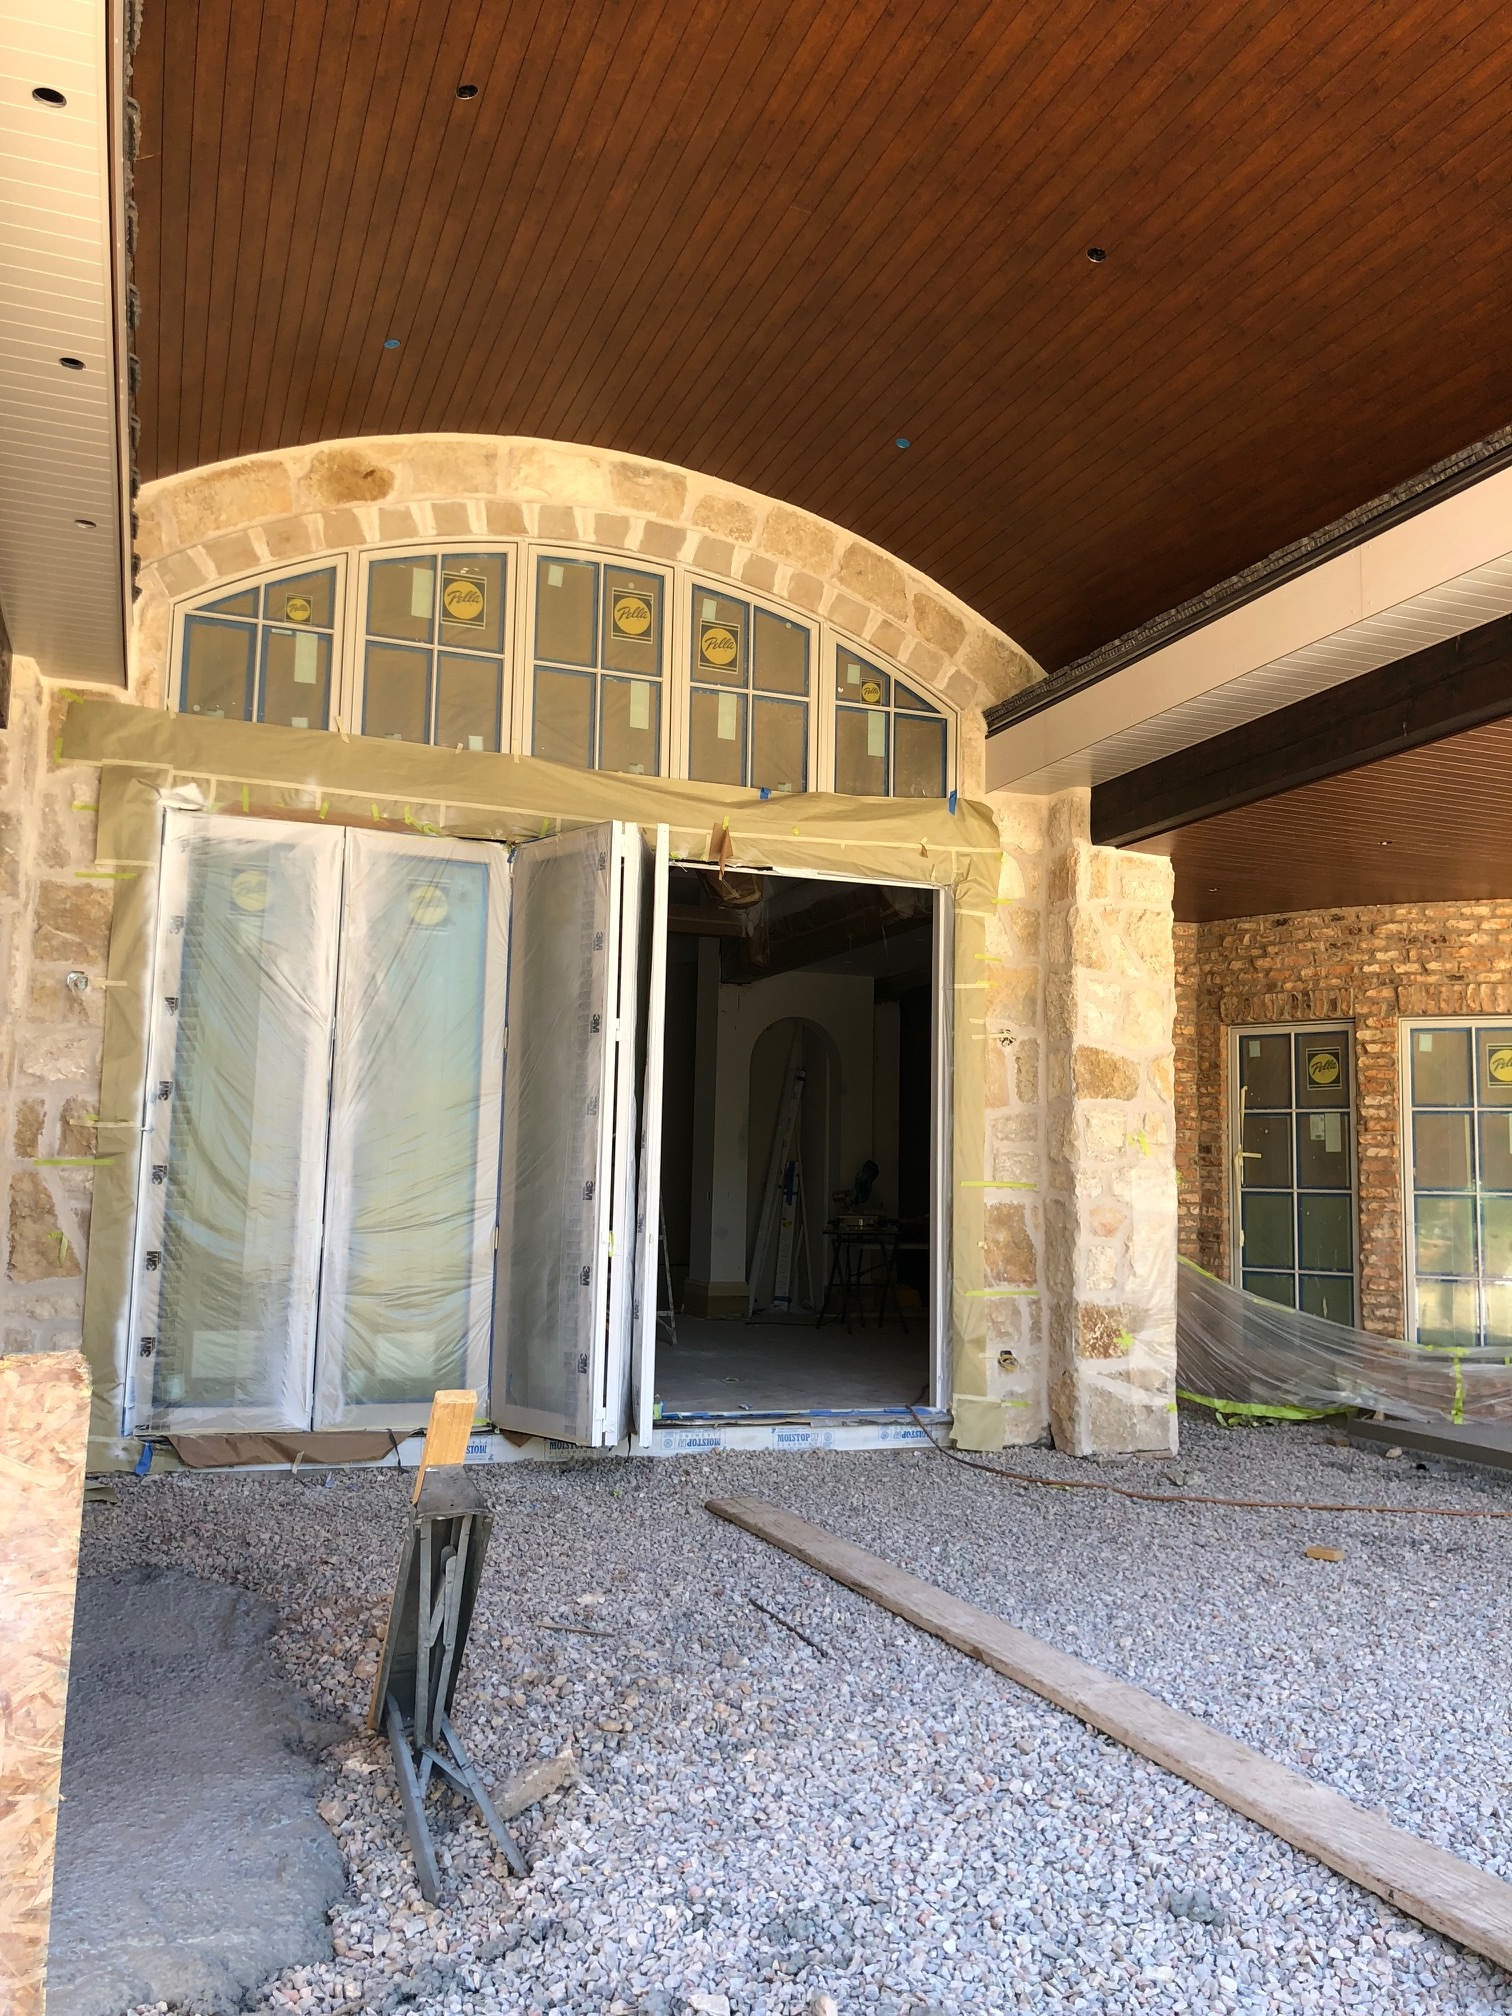 Finally, a shot of the back of the house! This folding door is accessed through the home's main living area and leads out to what will eventually be the backyard and patio.